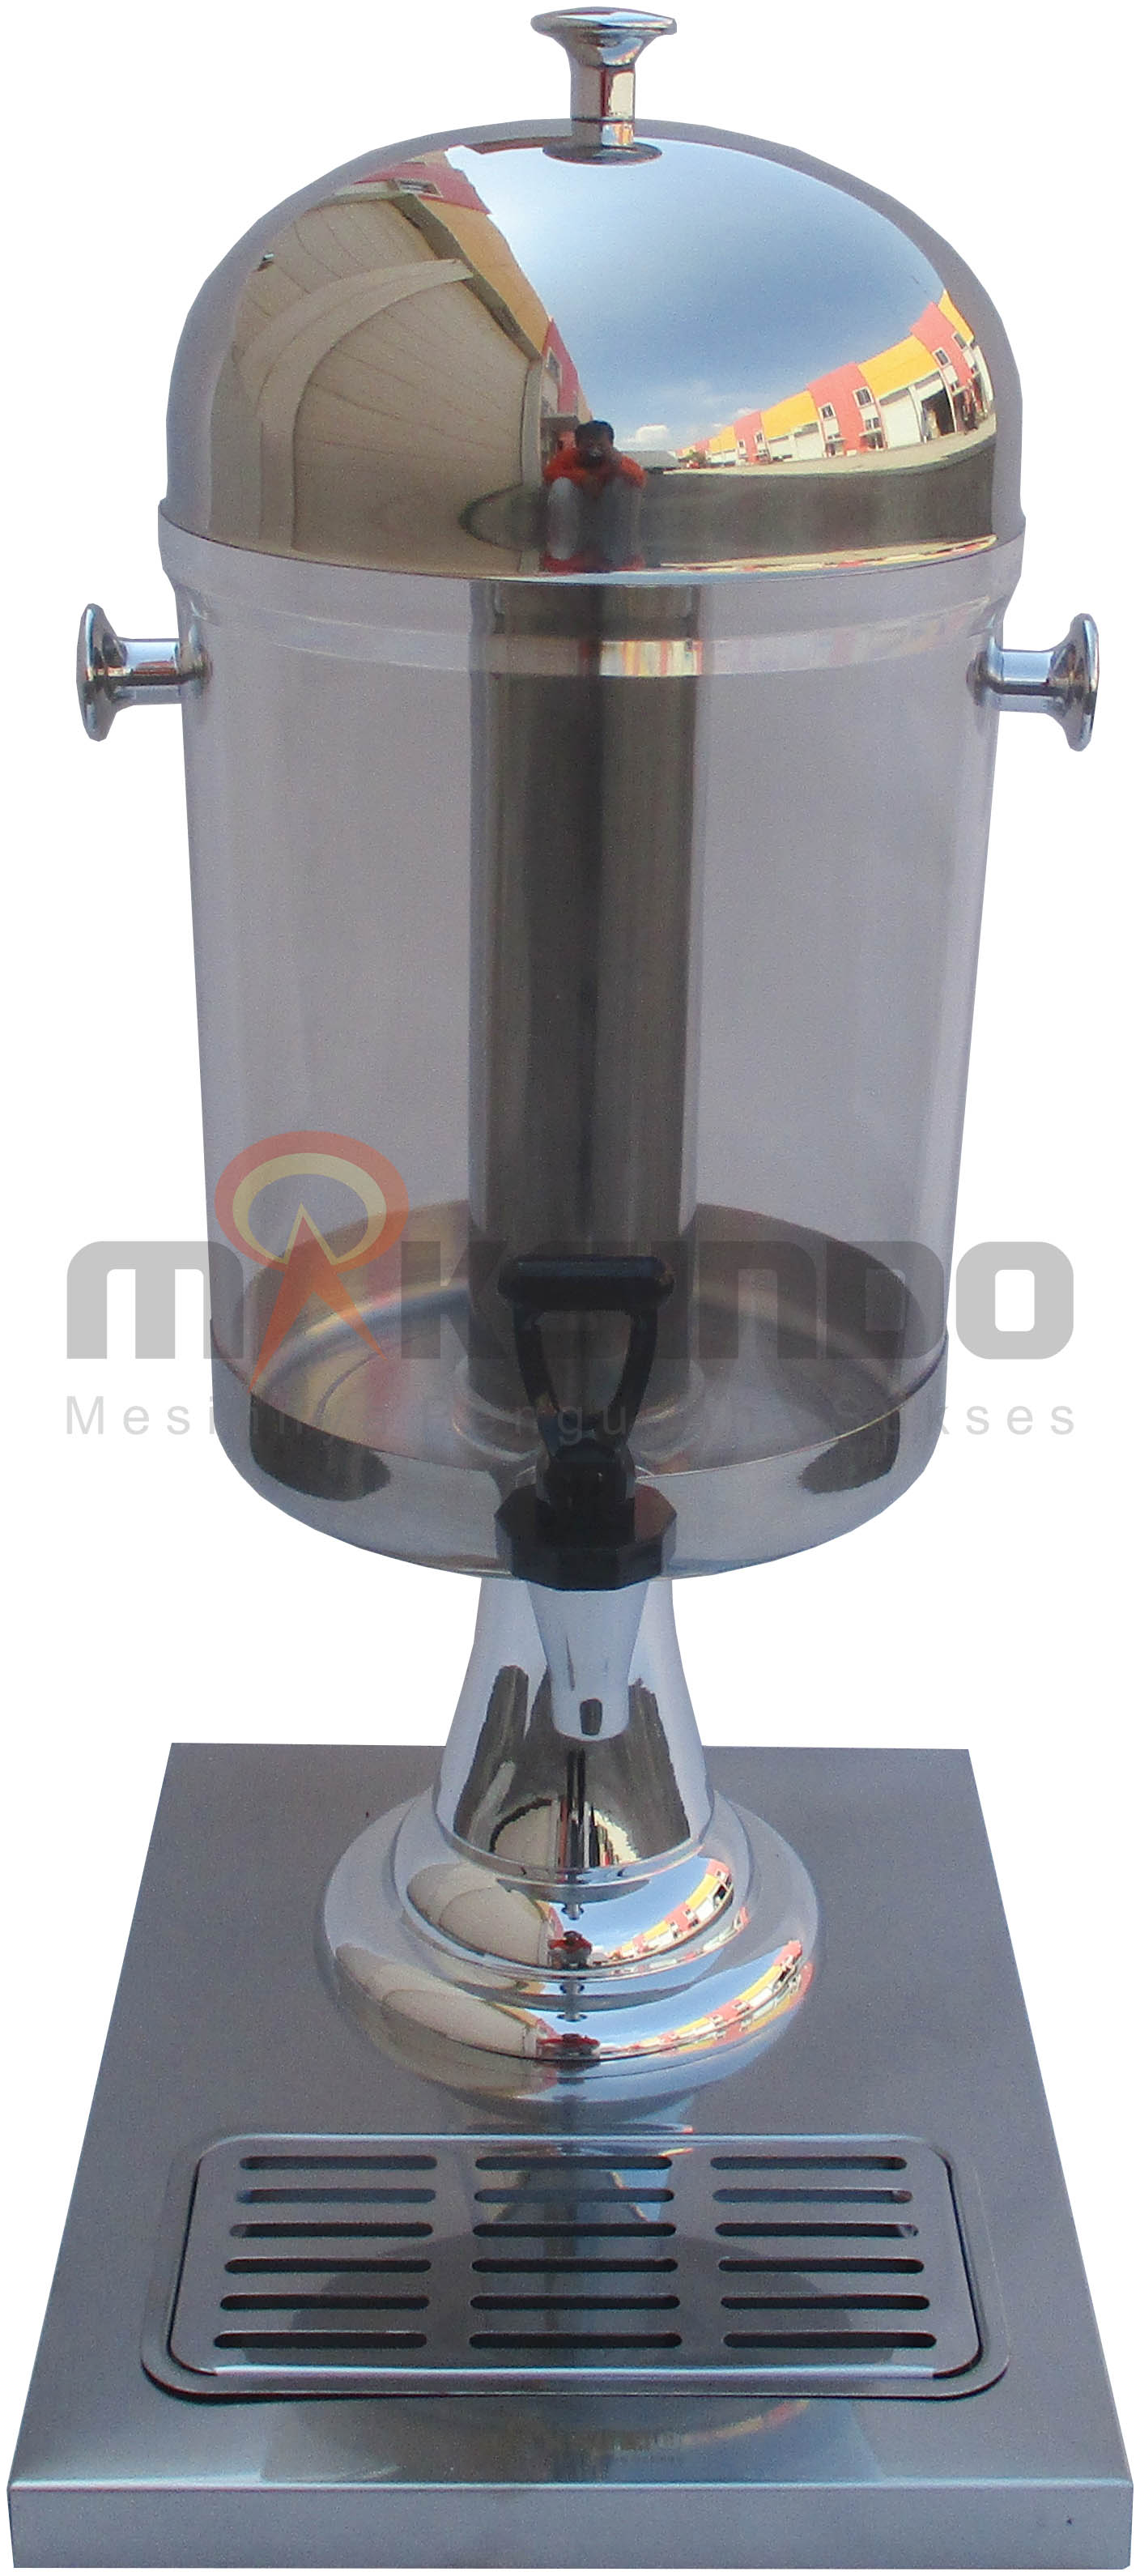 Jual Single Juice Dispenser MKS-DSP11 di Malang